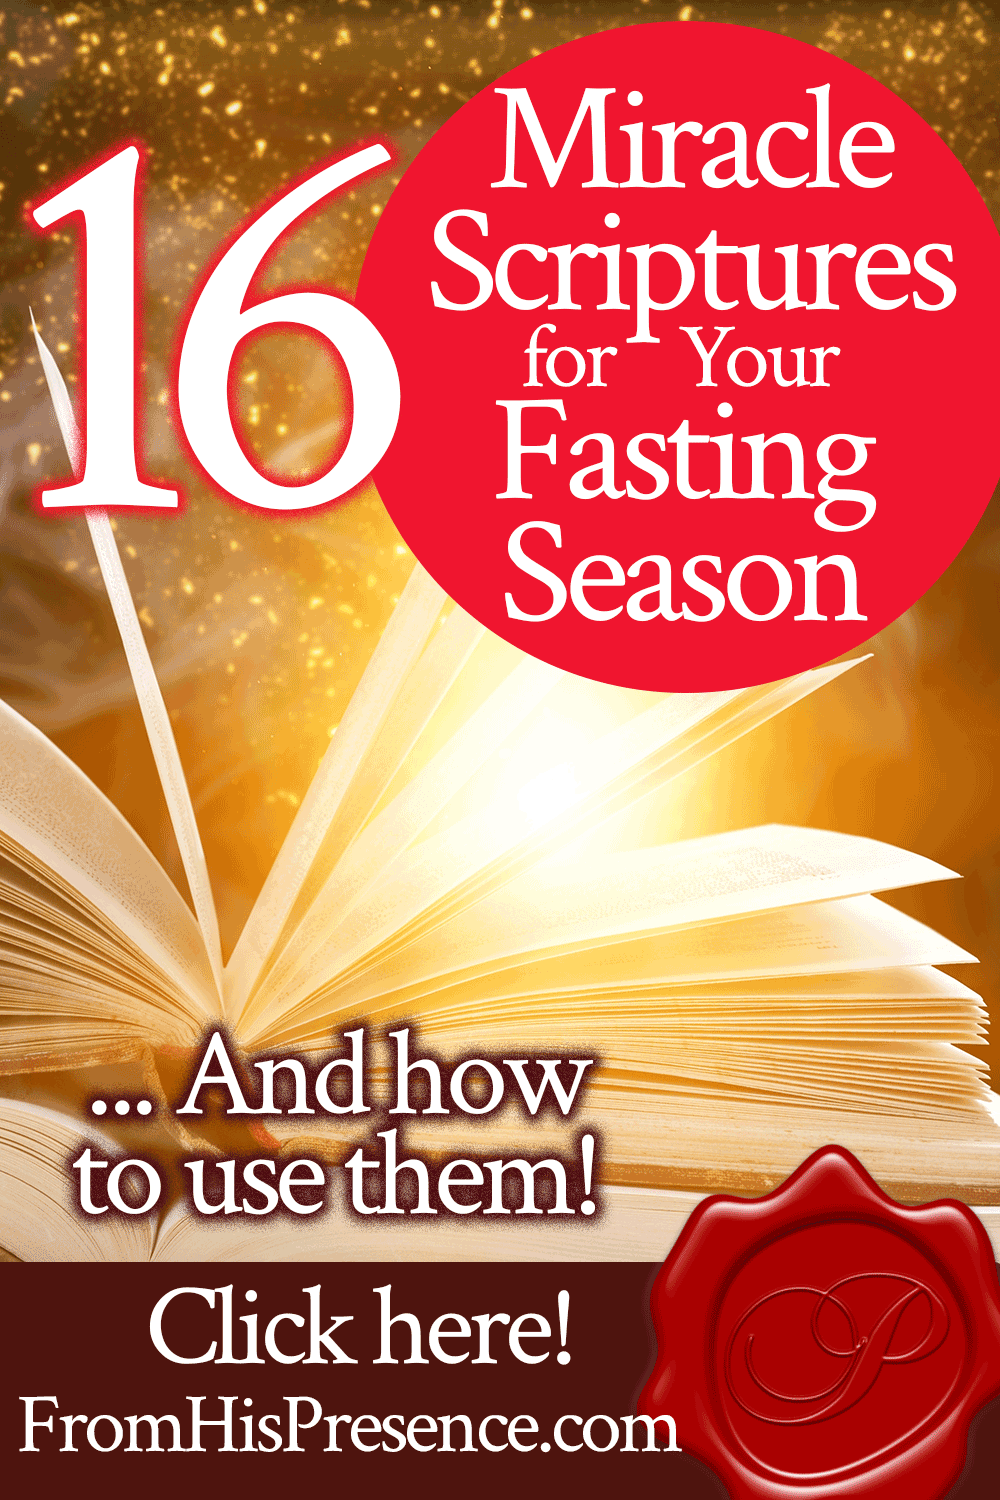 16 Miracle Scriptures for Your Fasting Season   by Jamie Rohrbaugh   FromHisPresence.com